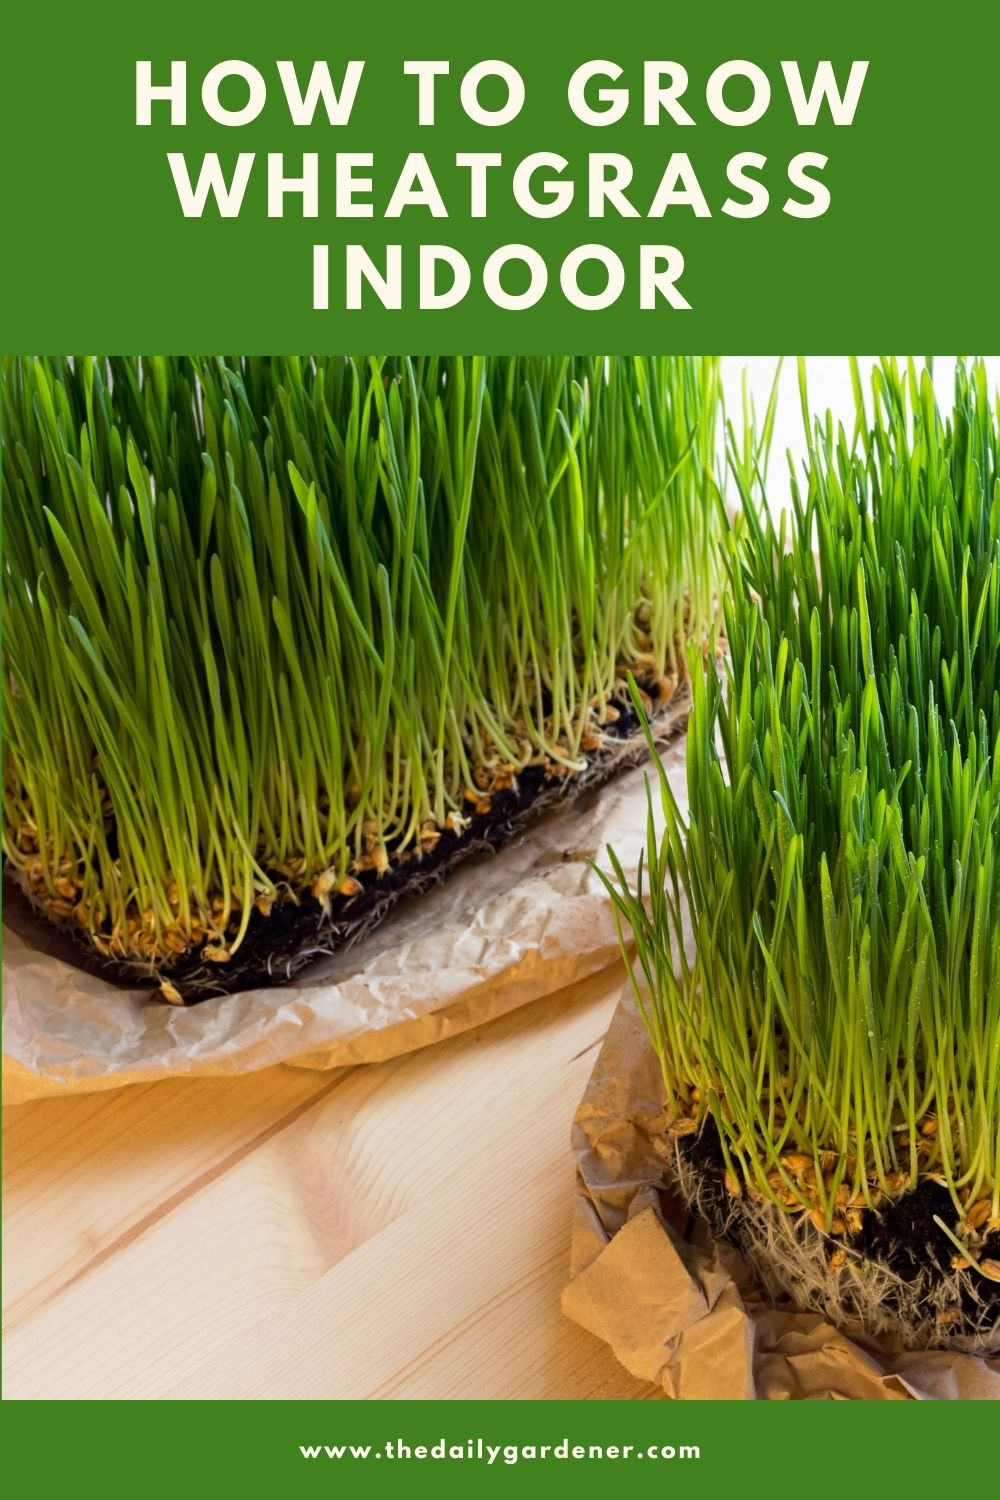 How to Grow Wheatgrass Indoor 1